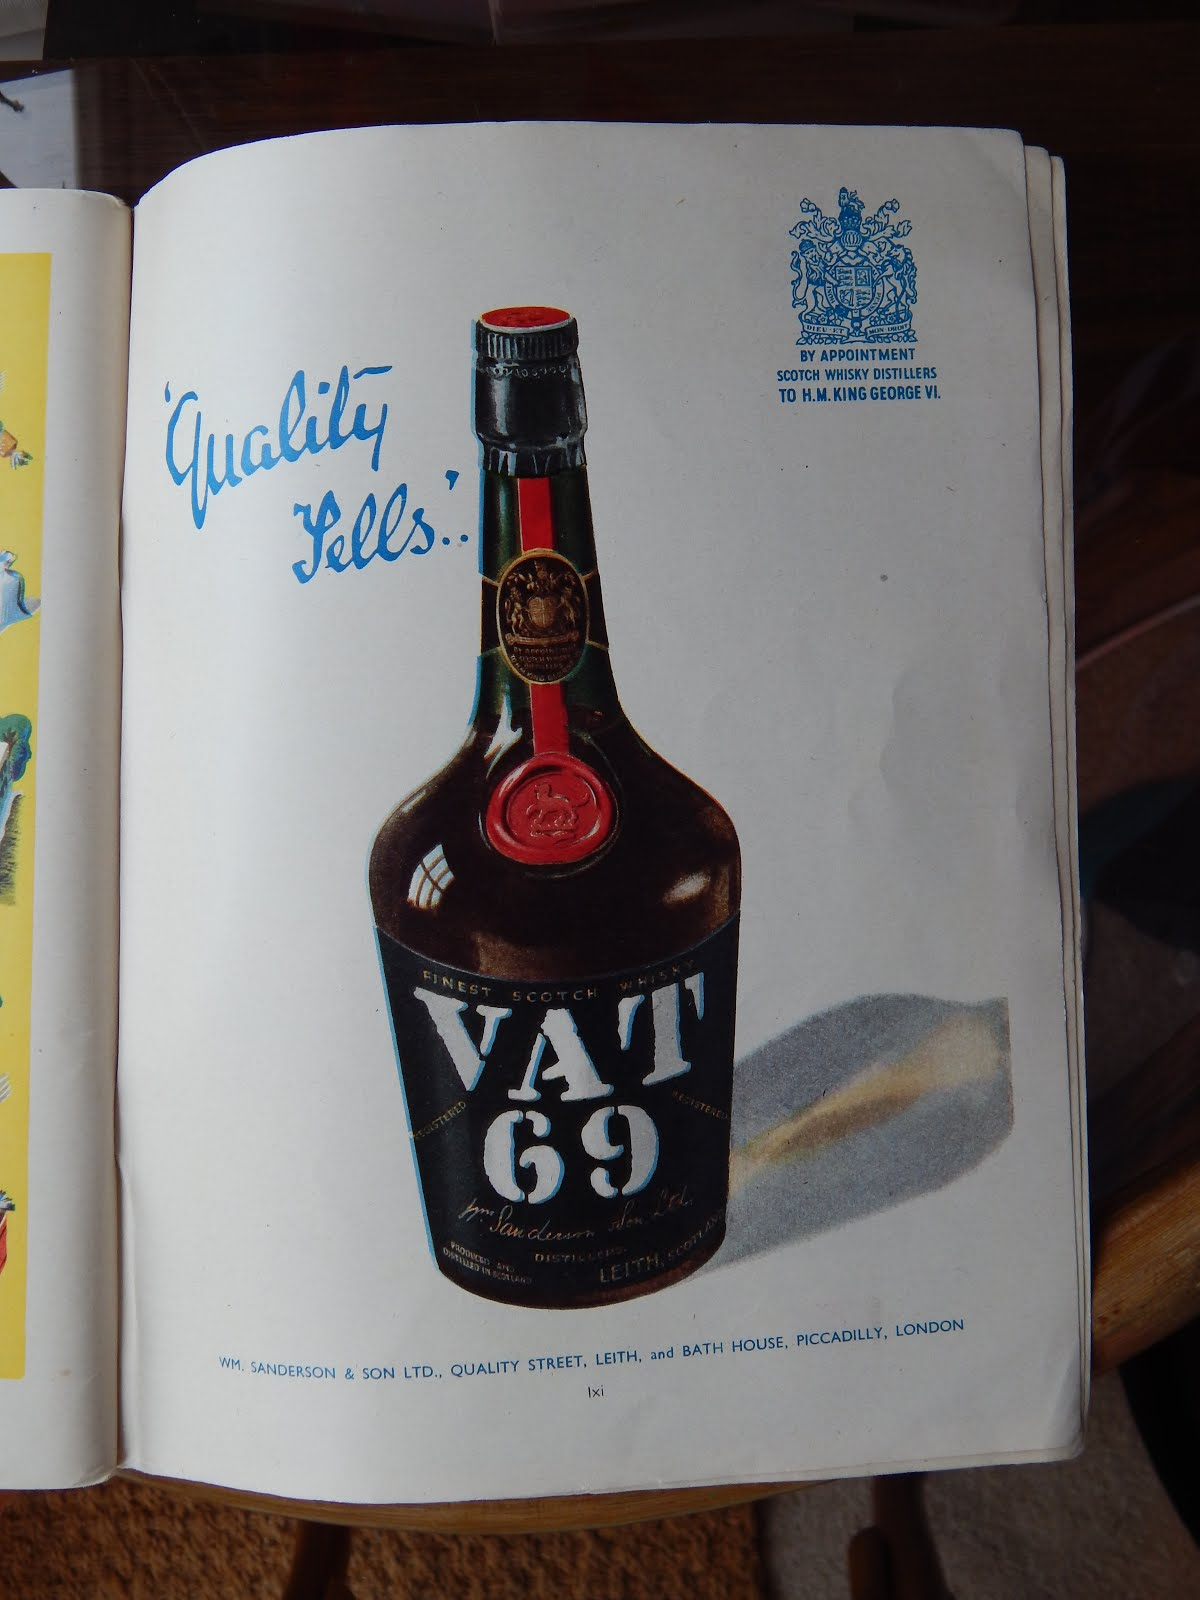 Who remembers Vat 69?